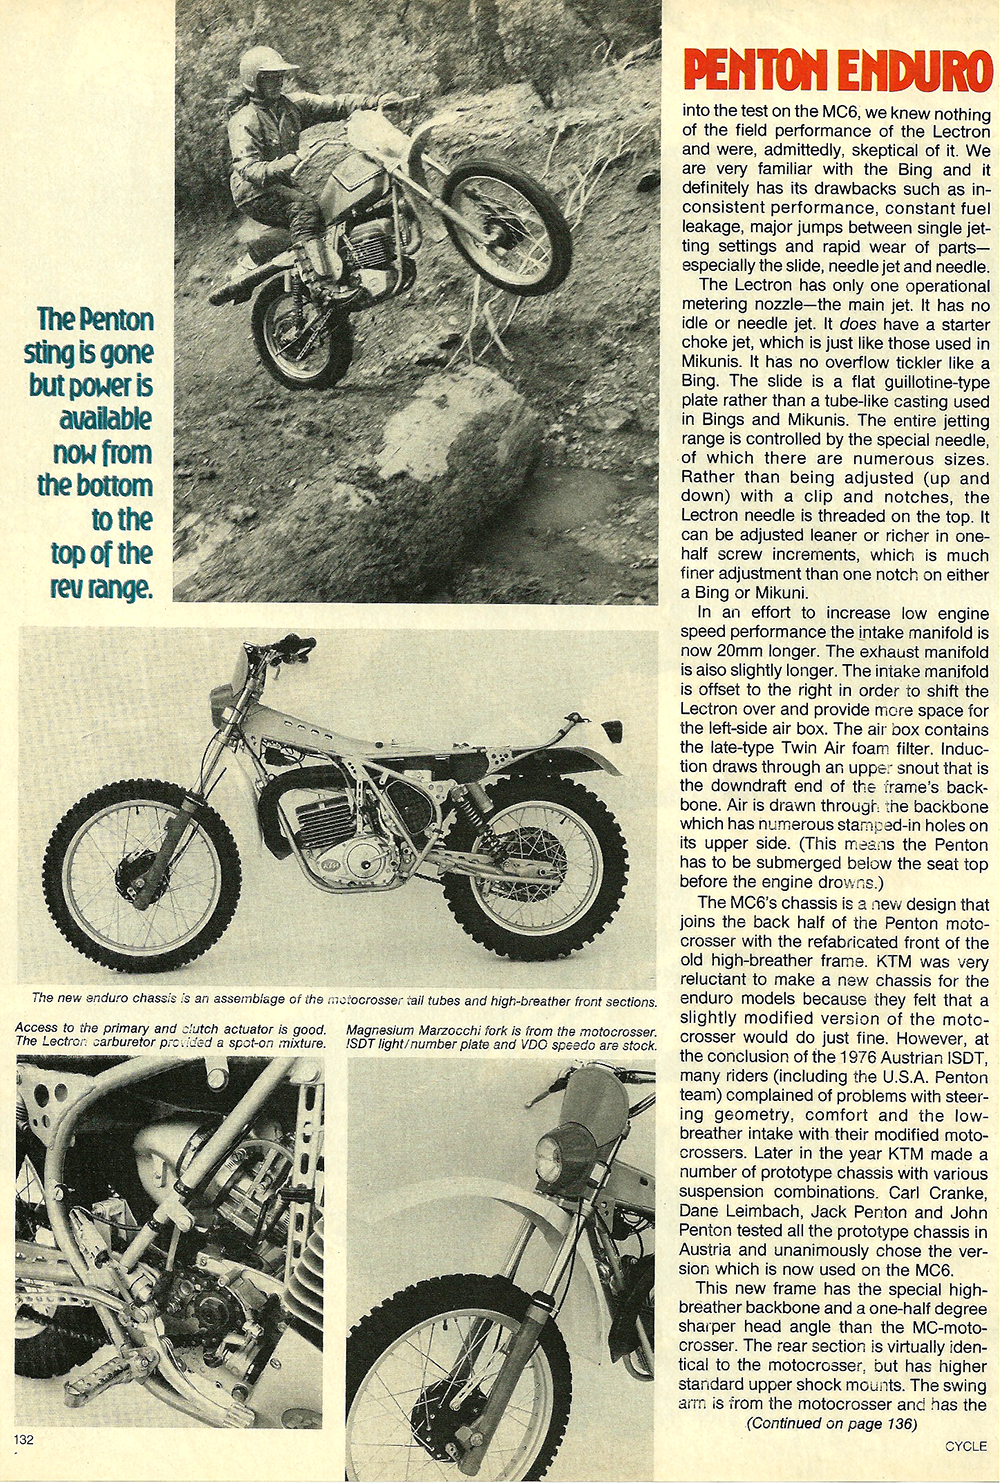 1977 Penton MC6 250 Enduro road test 3.jpg